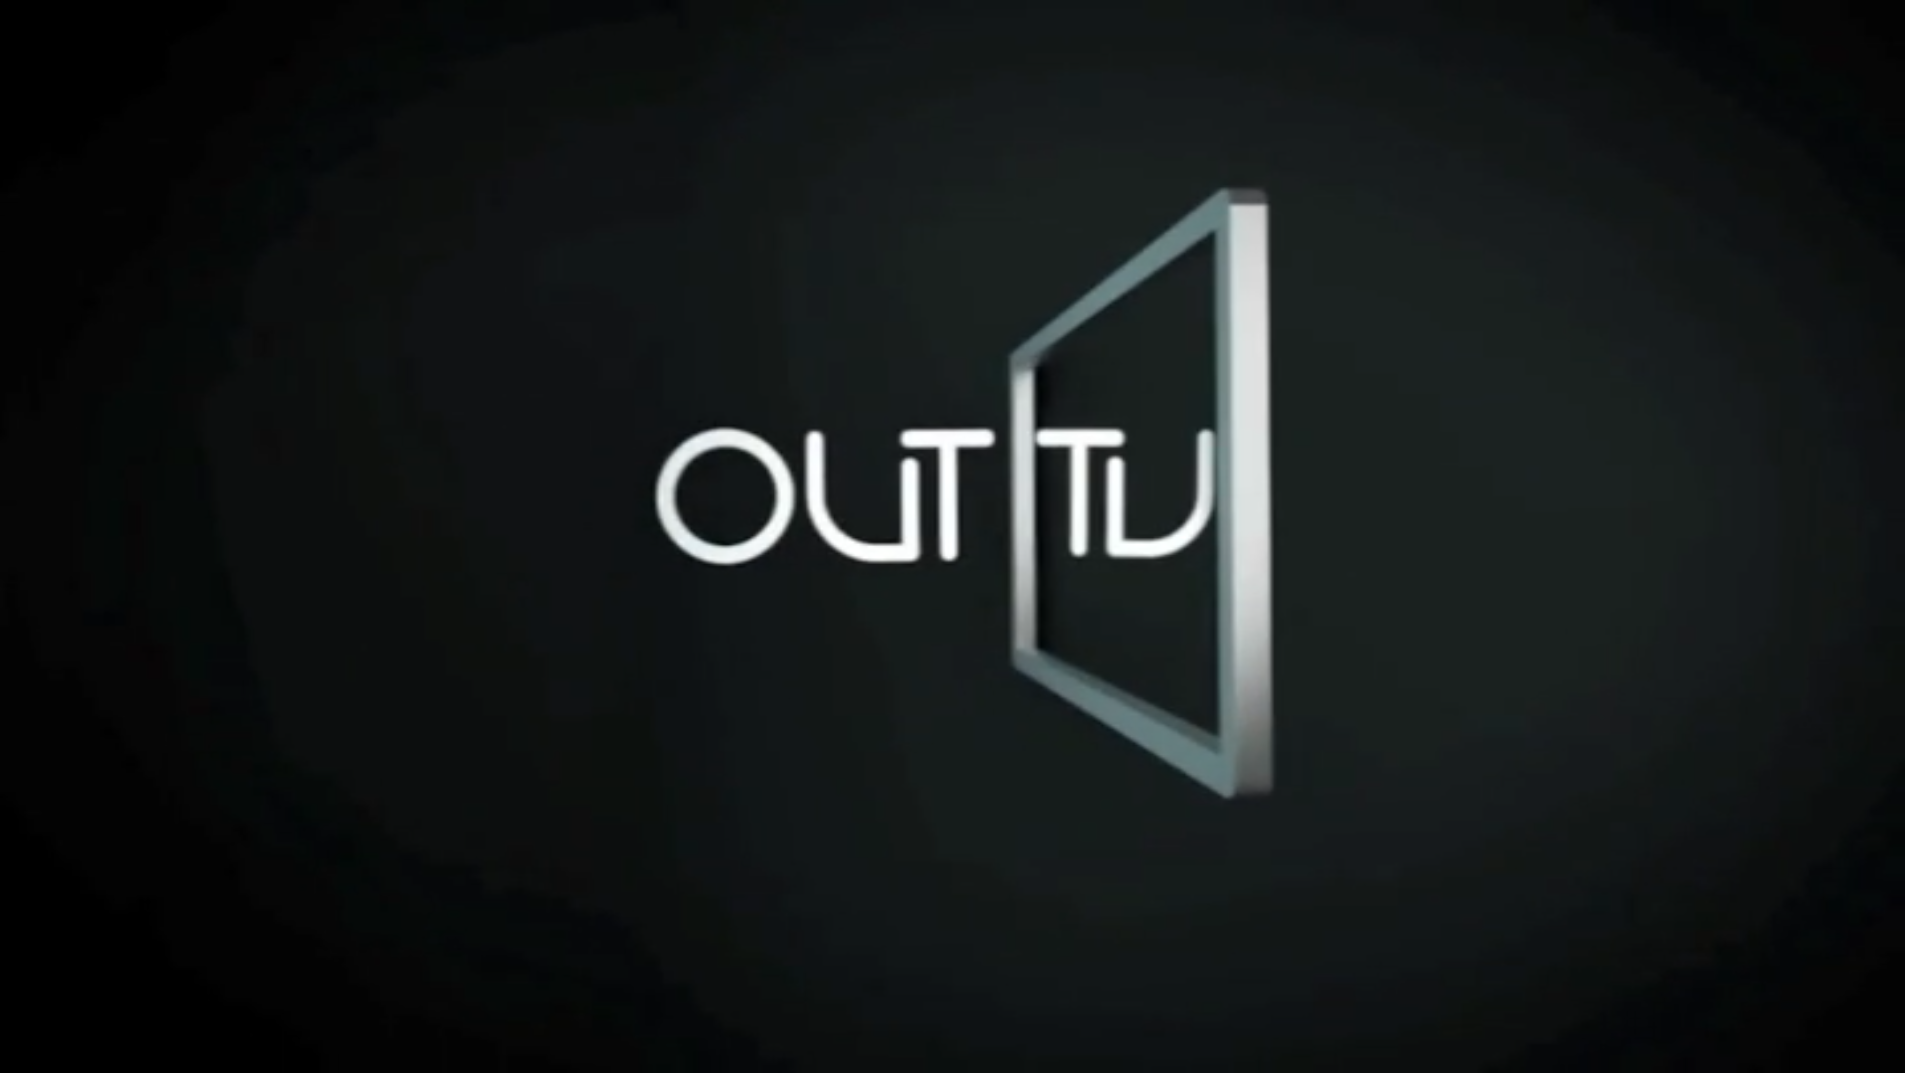 Generic Promo Reel for OUTTV Sweden. (Swedish)